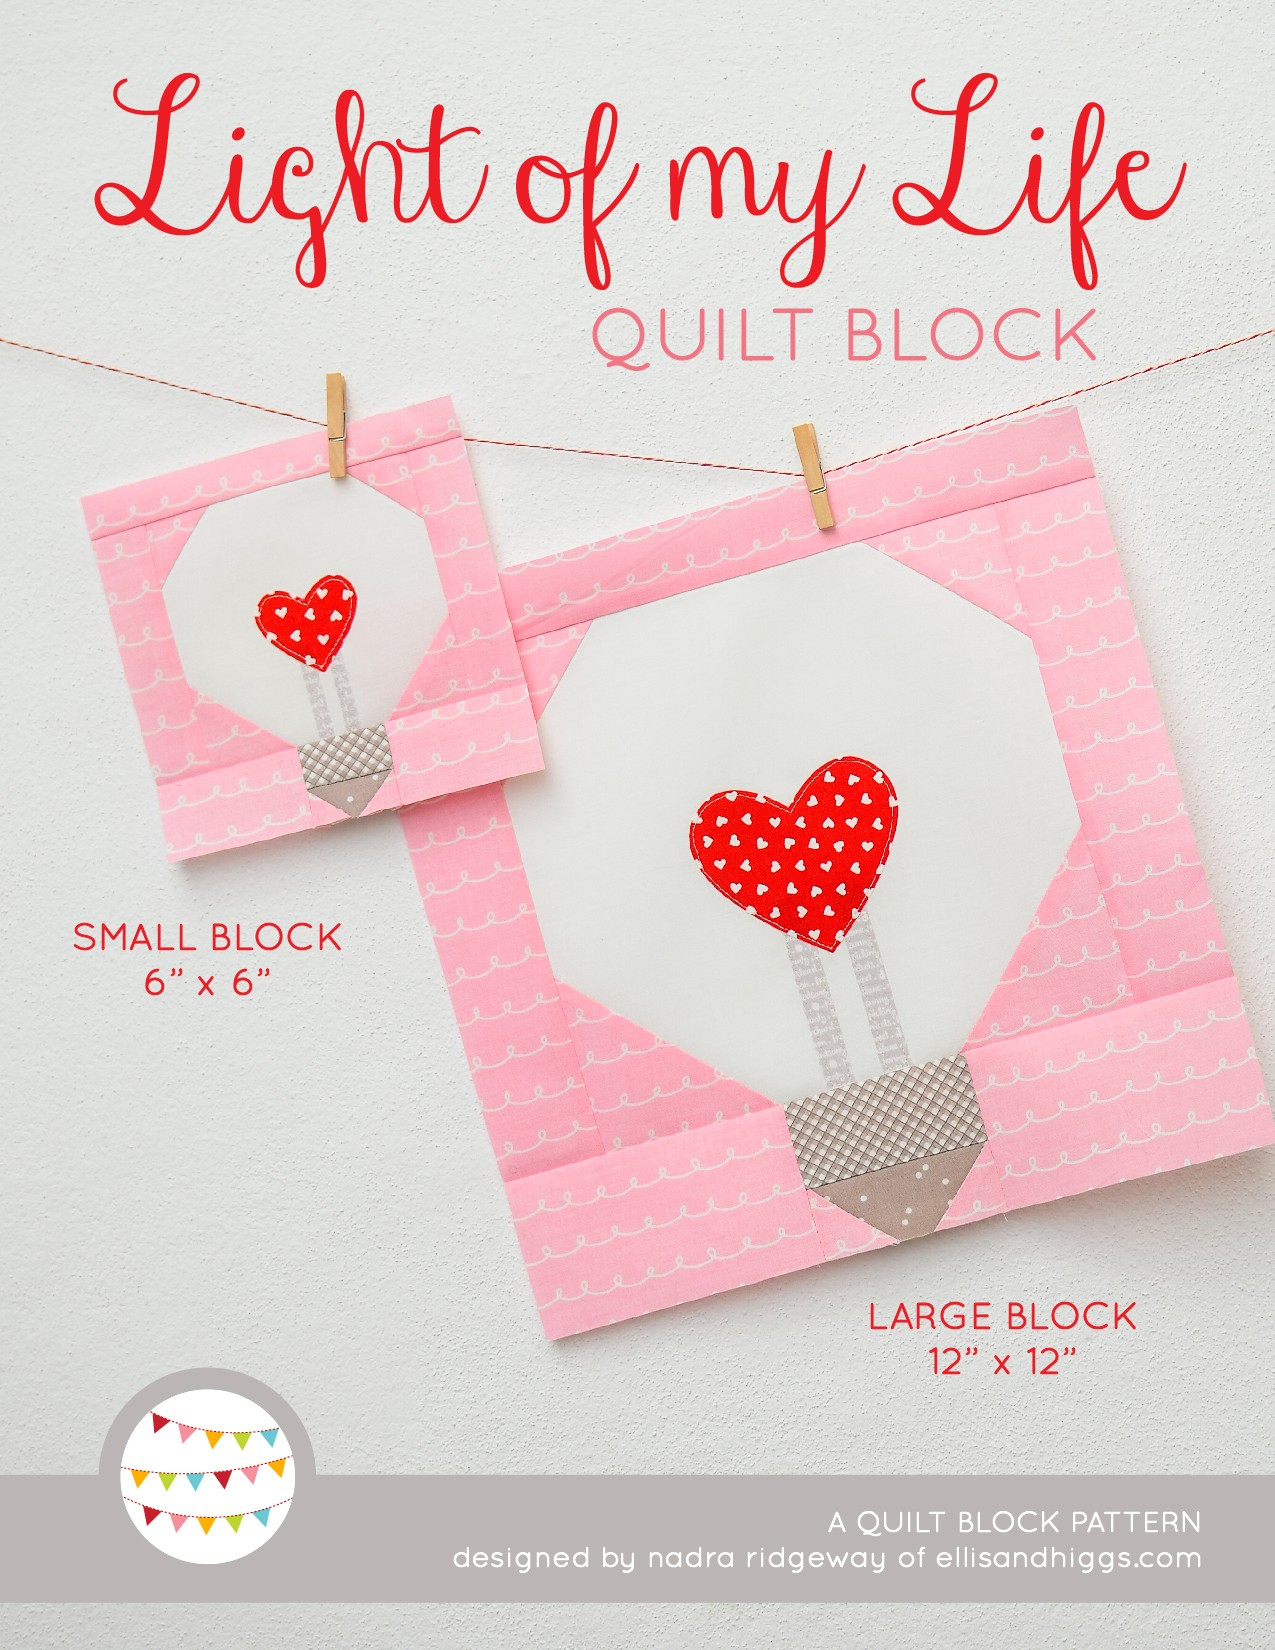 Heart Light Bulb quilt block in two sizes hanging on a wall